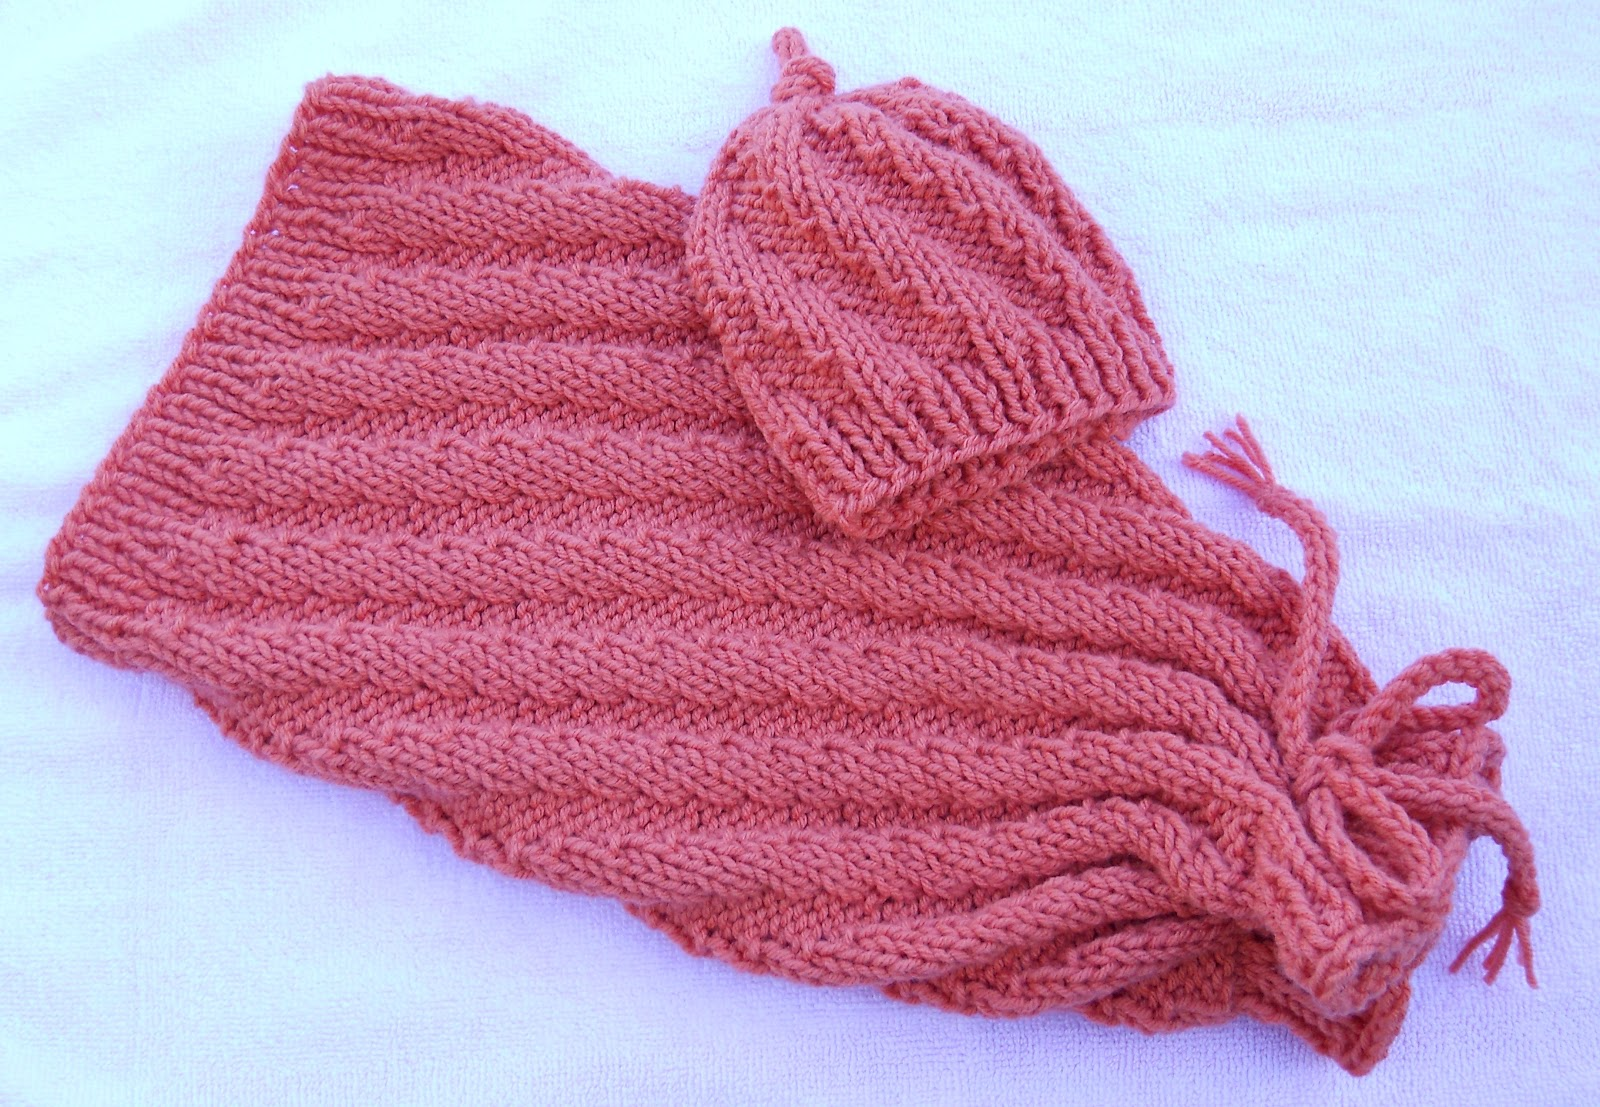 Knitting Stich Patterns : Suzies Stuff: COME ON BABY LET S DO THE TWIST